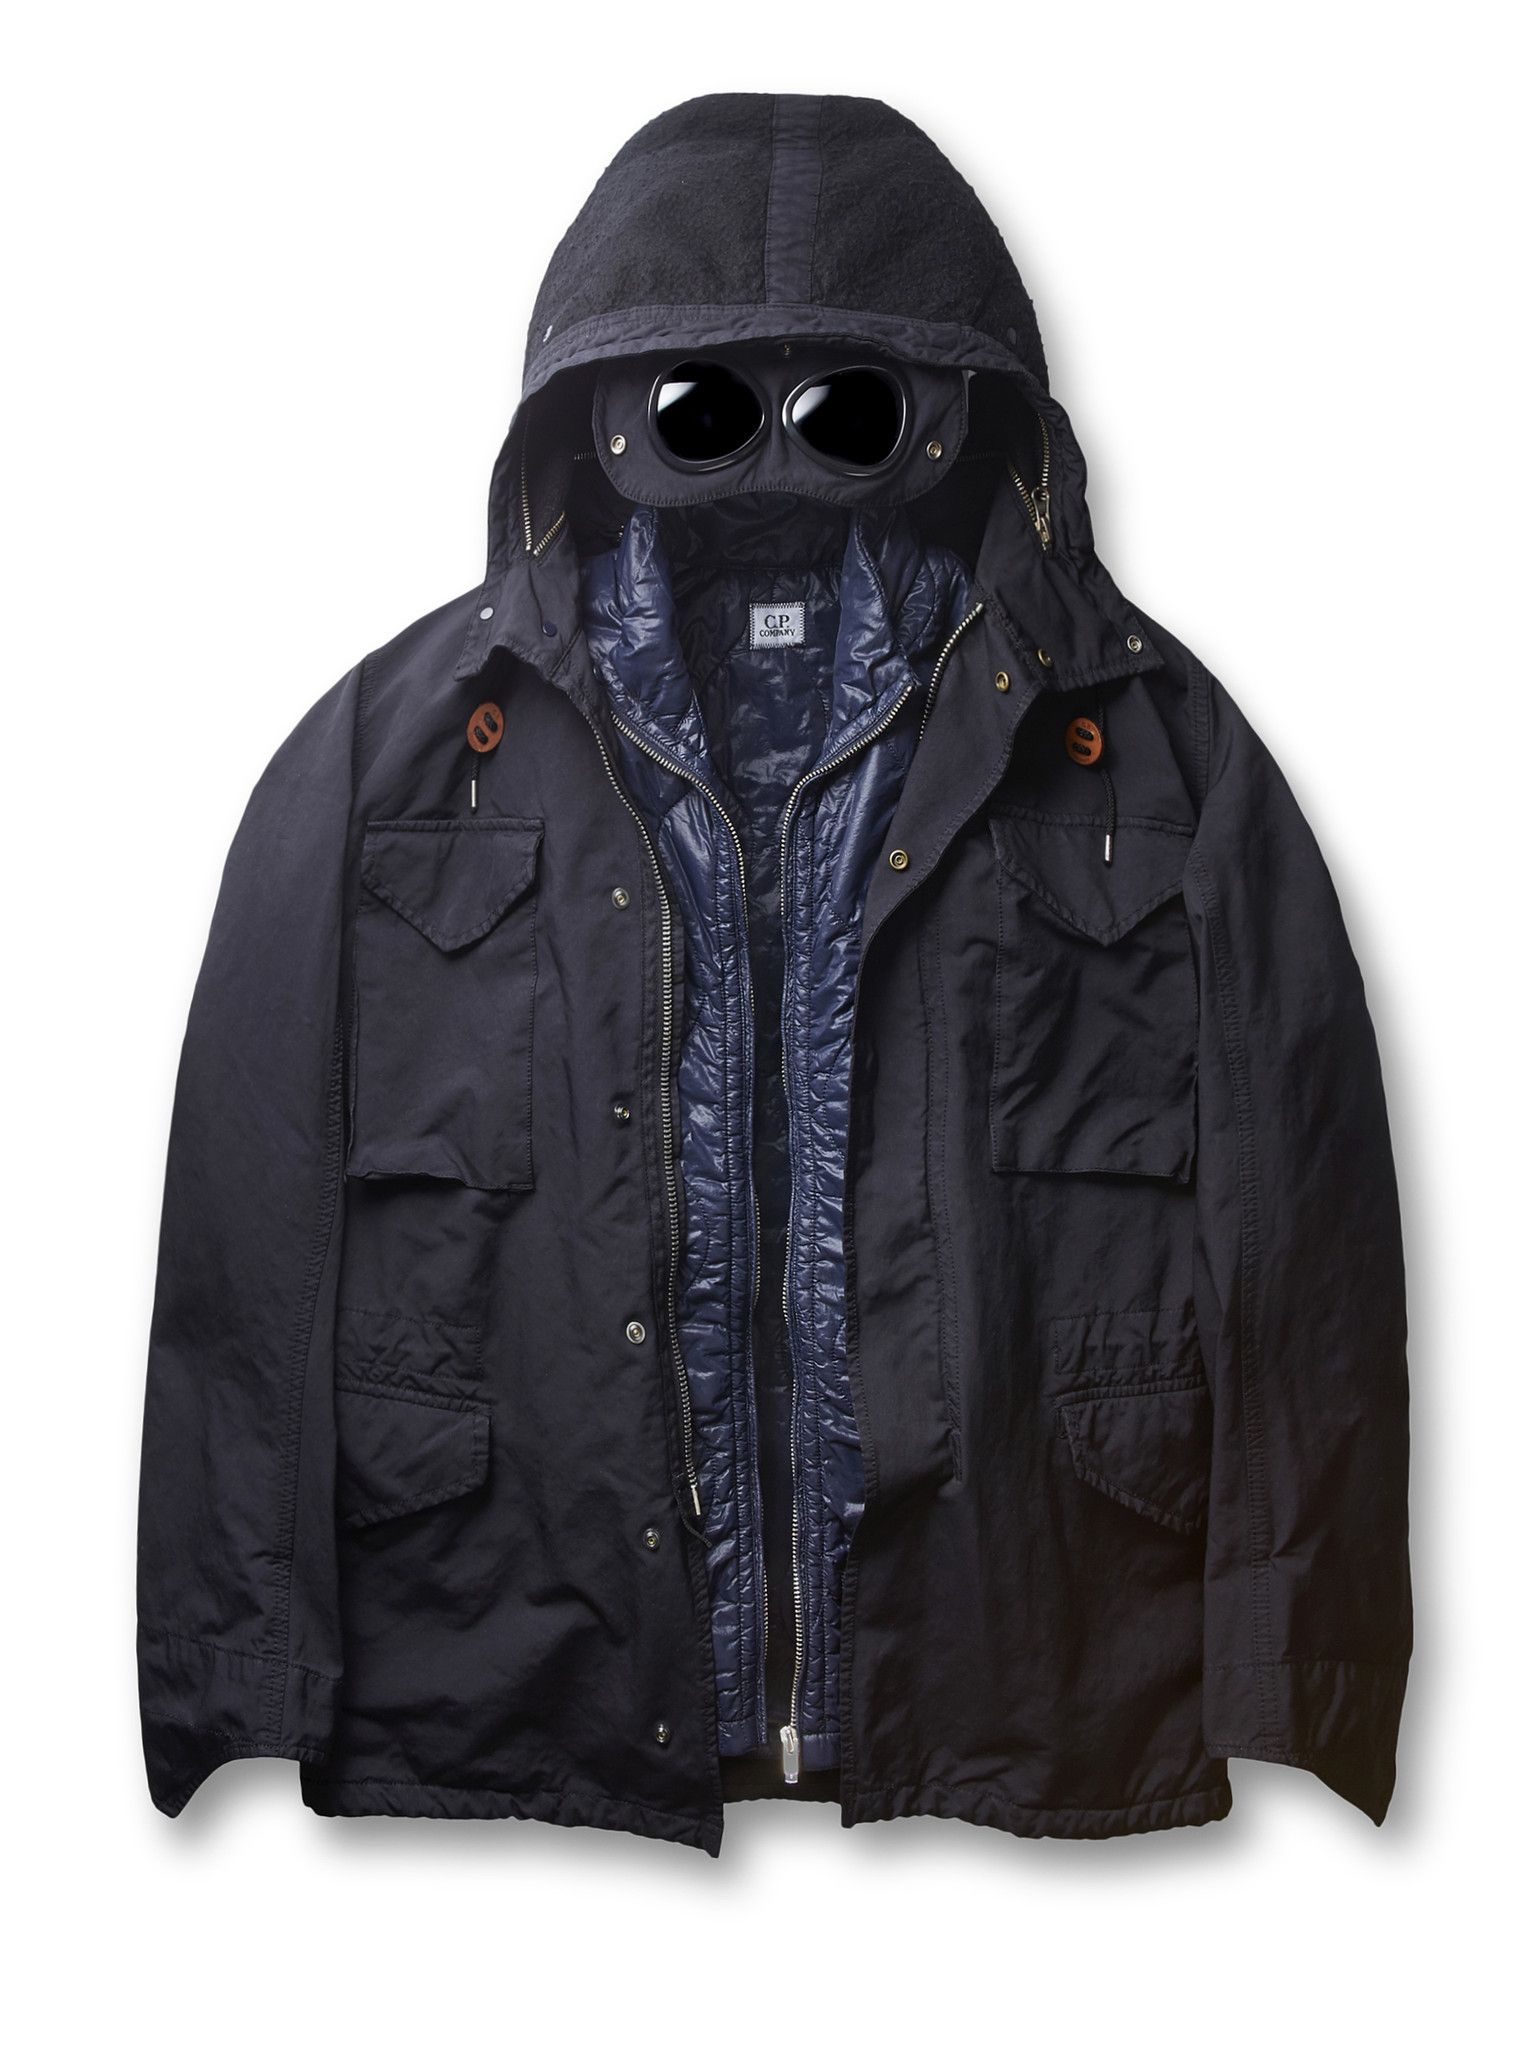 Japanese Micro Fibre Goggle Field Jacket in Navy Blue